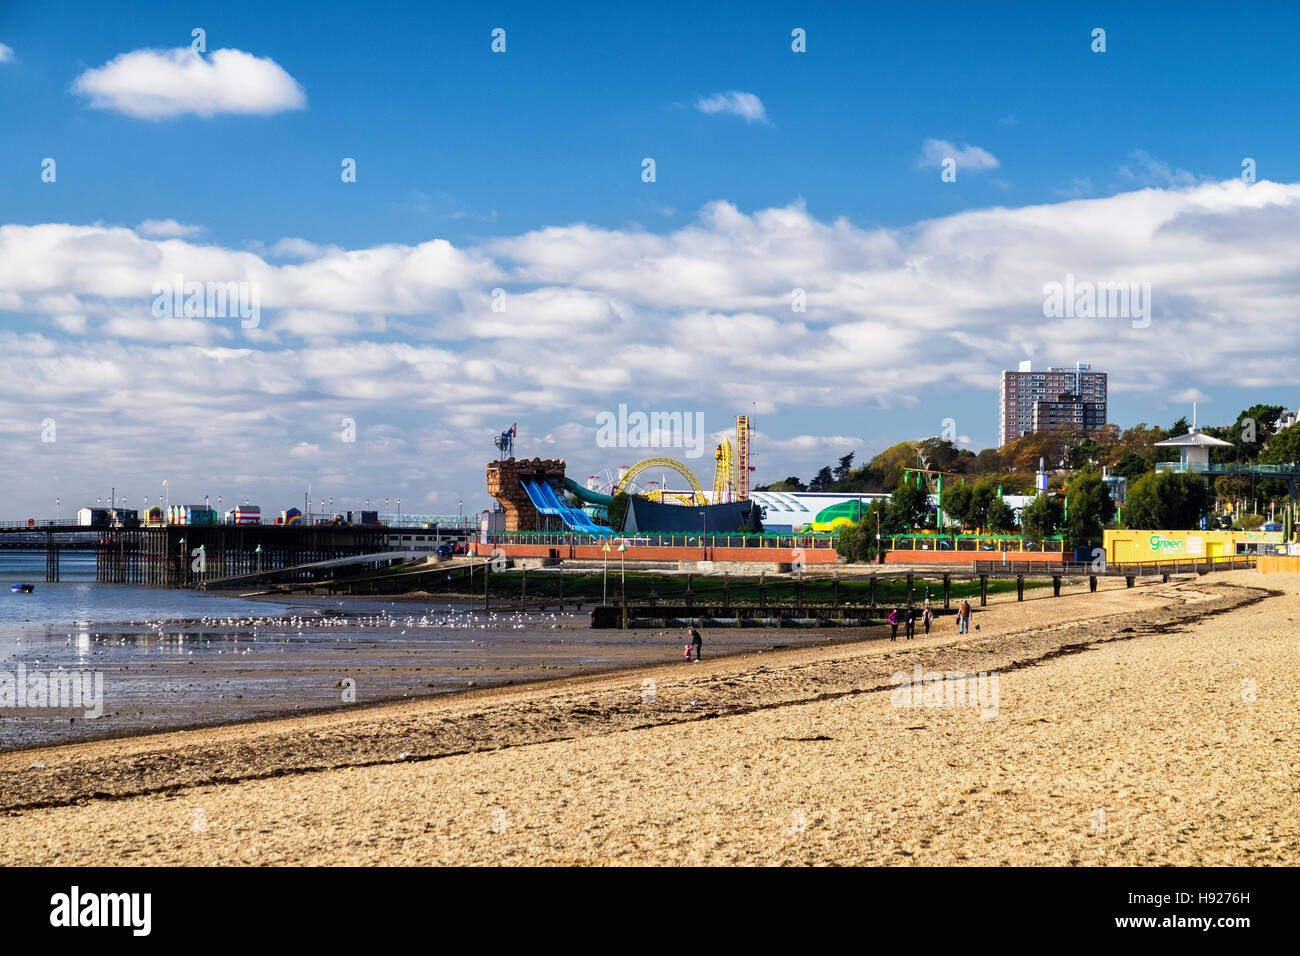 Pier and Adventure Island funfair and people walking on beach at low tide. Southend-on-sea, Essex,England - Stock Image